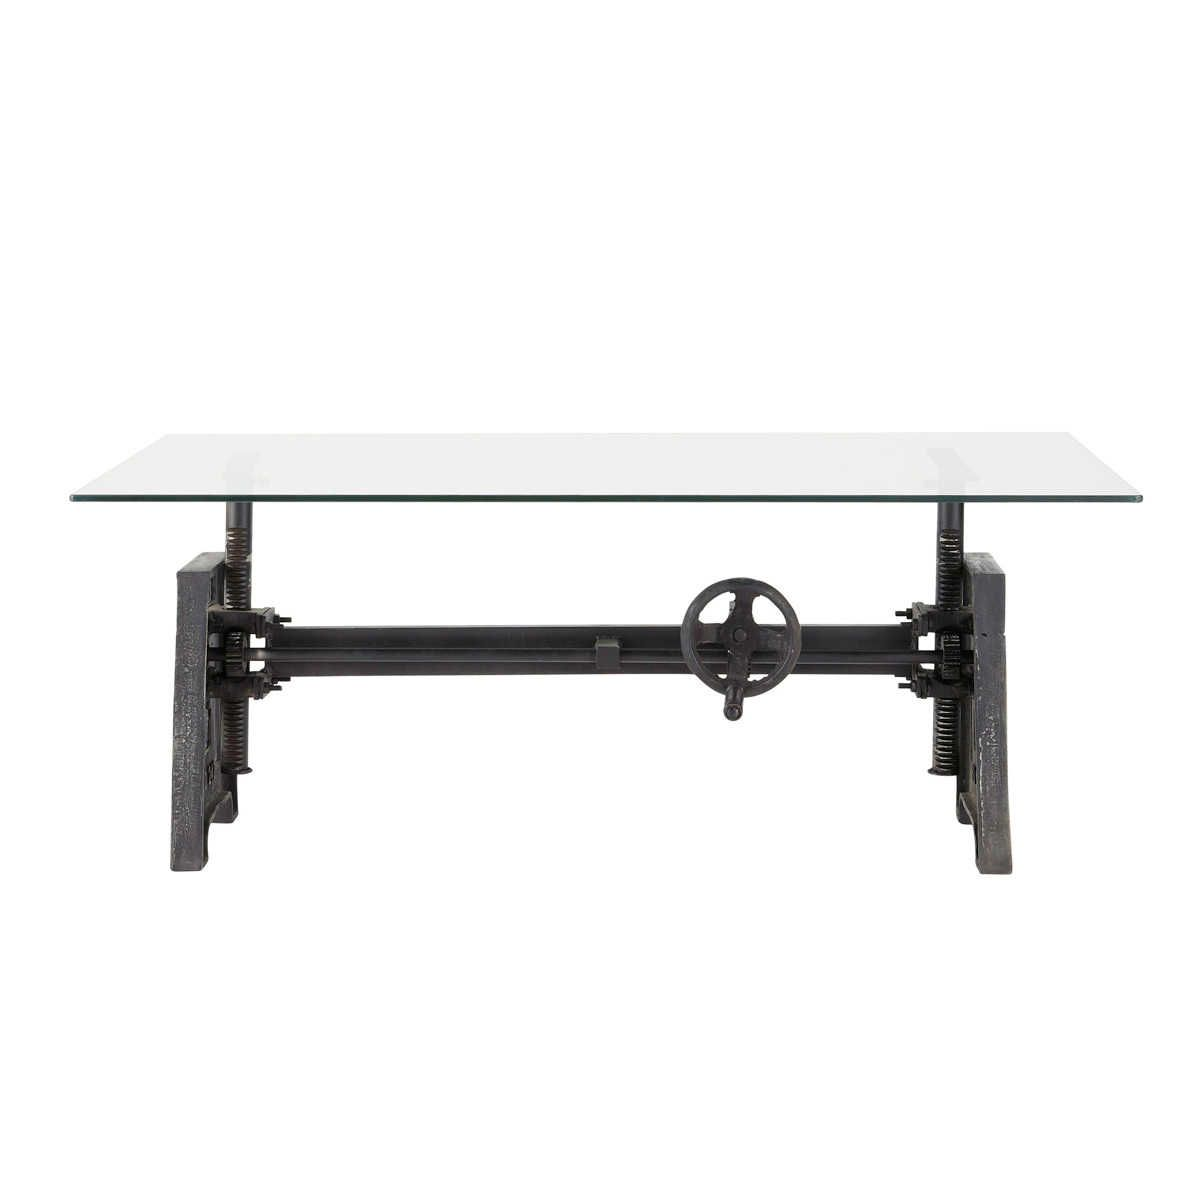 Table Basse Indus En Verre Et Metal L 135 Cm Industriel Table